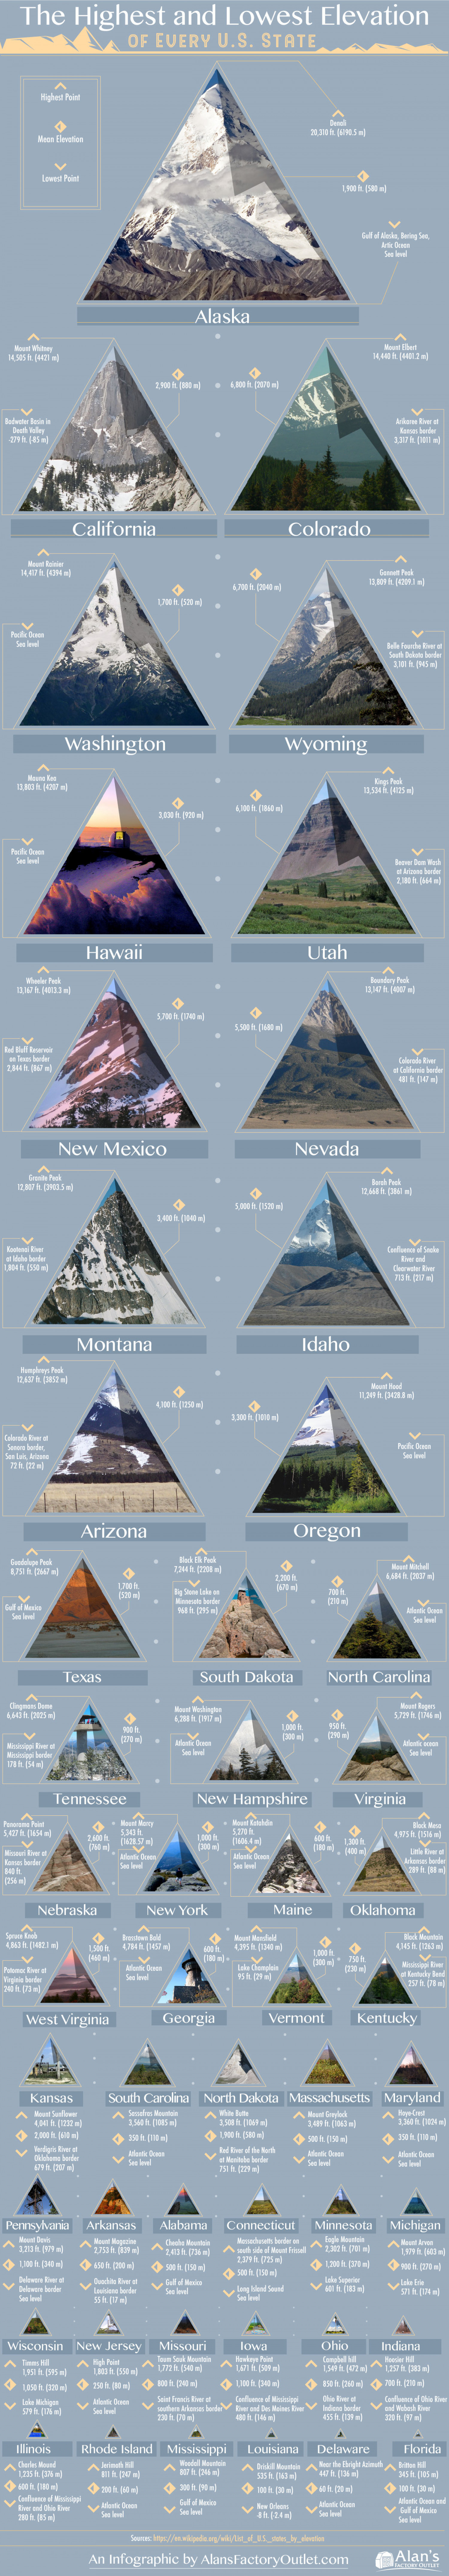 The Highest and Lowest Elevation of Every U.S. State Infographic